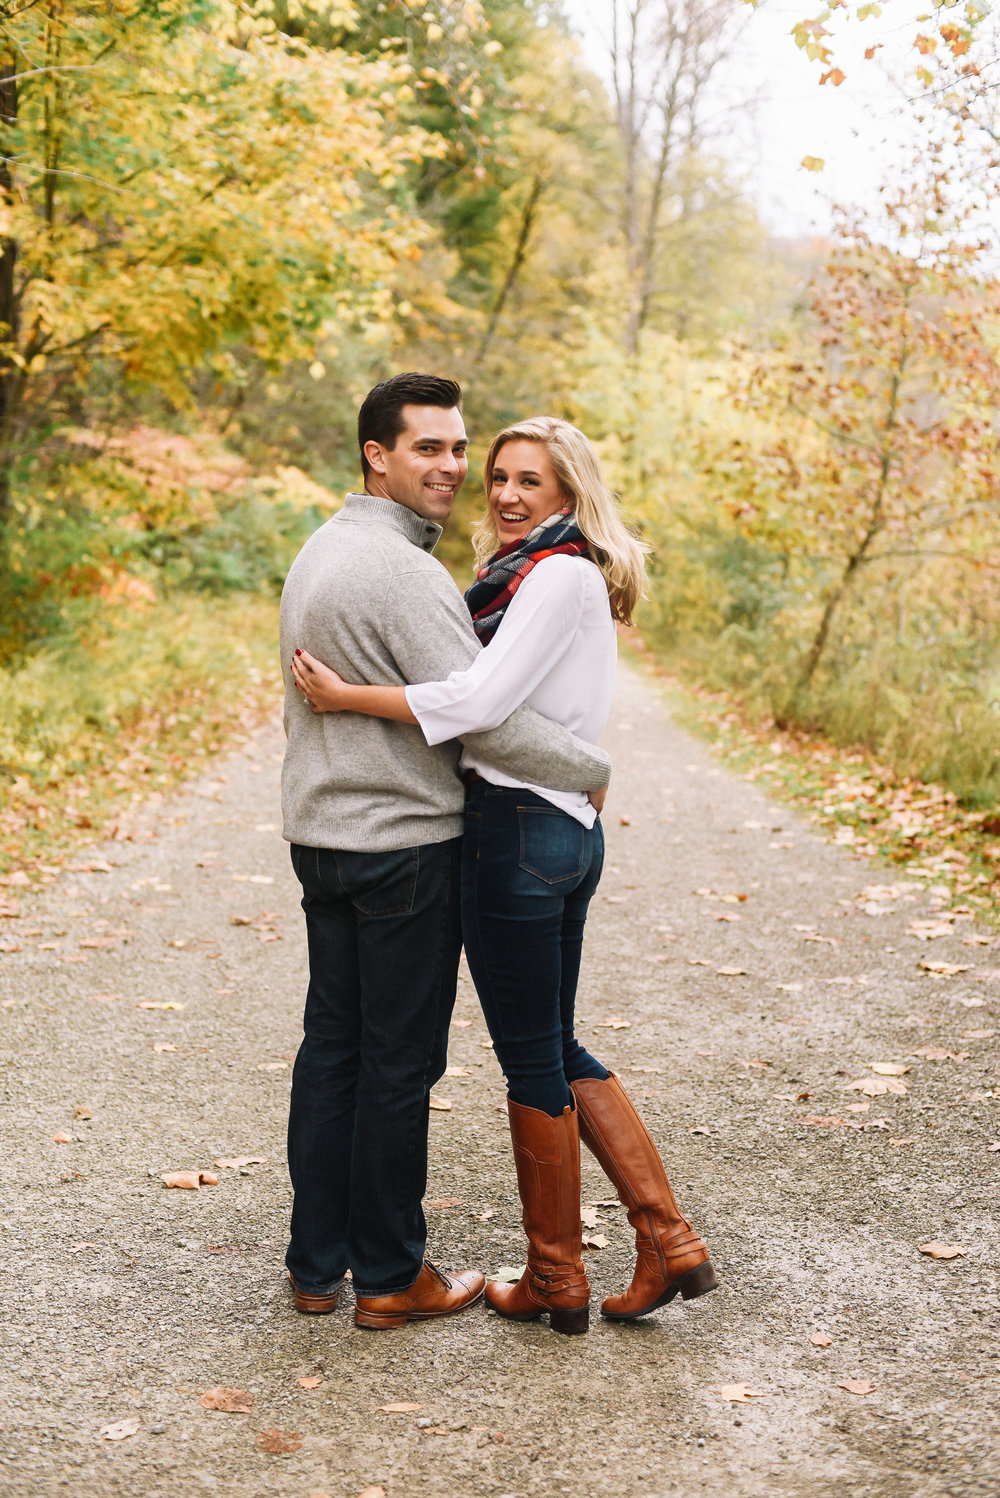 Downtown_Ann_Arbor_Arboretum_Engagement_Photos-6.jpg